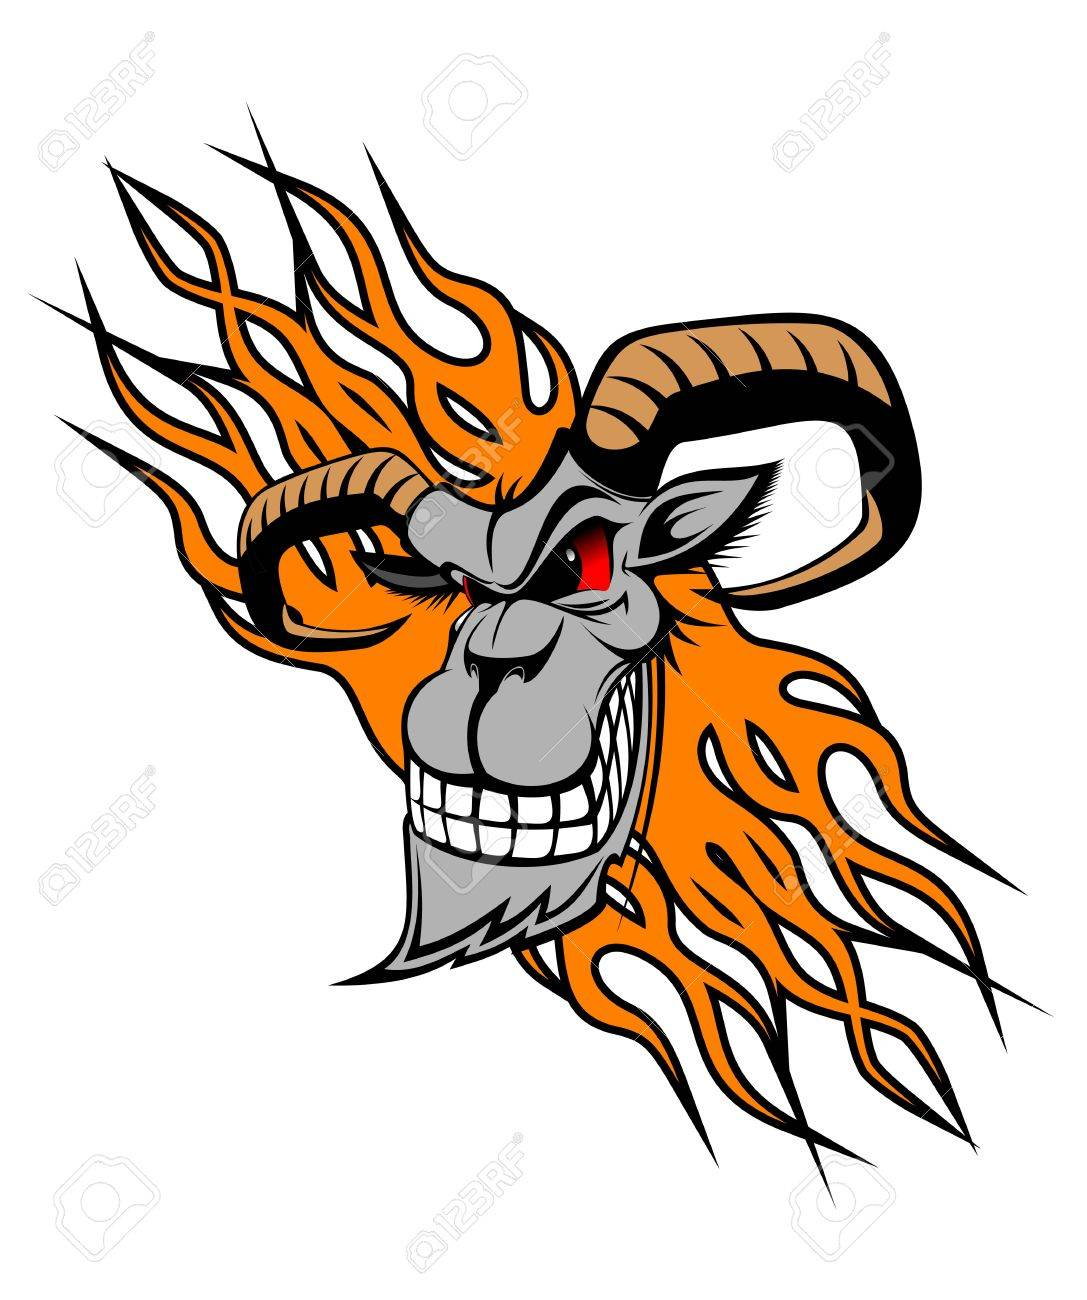 Wild goat with flames as a tattoo or mascot Stock Vector - 11157312